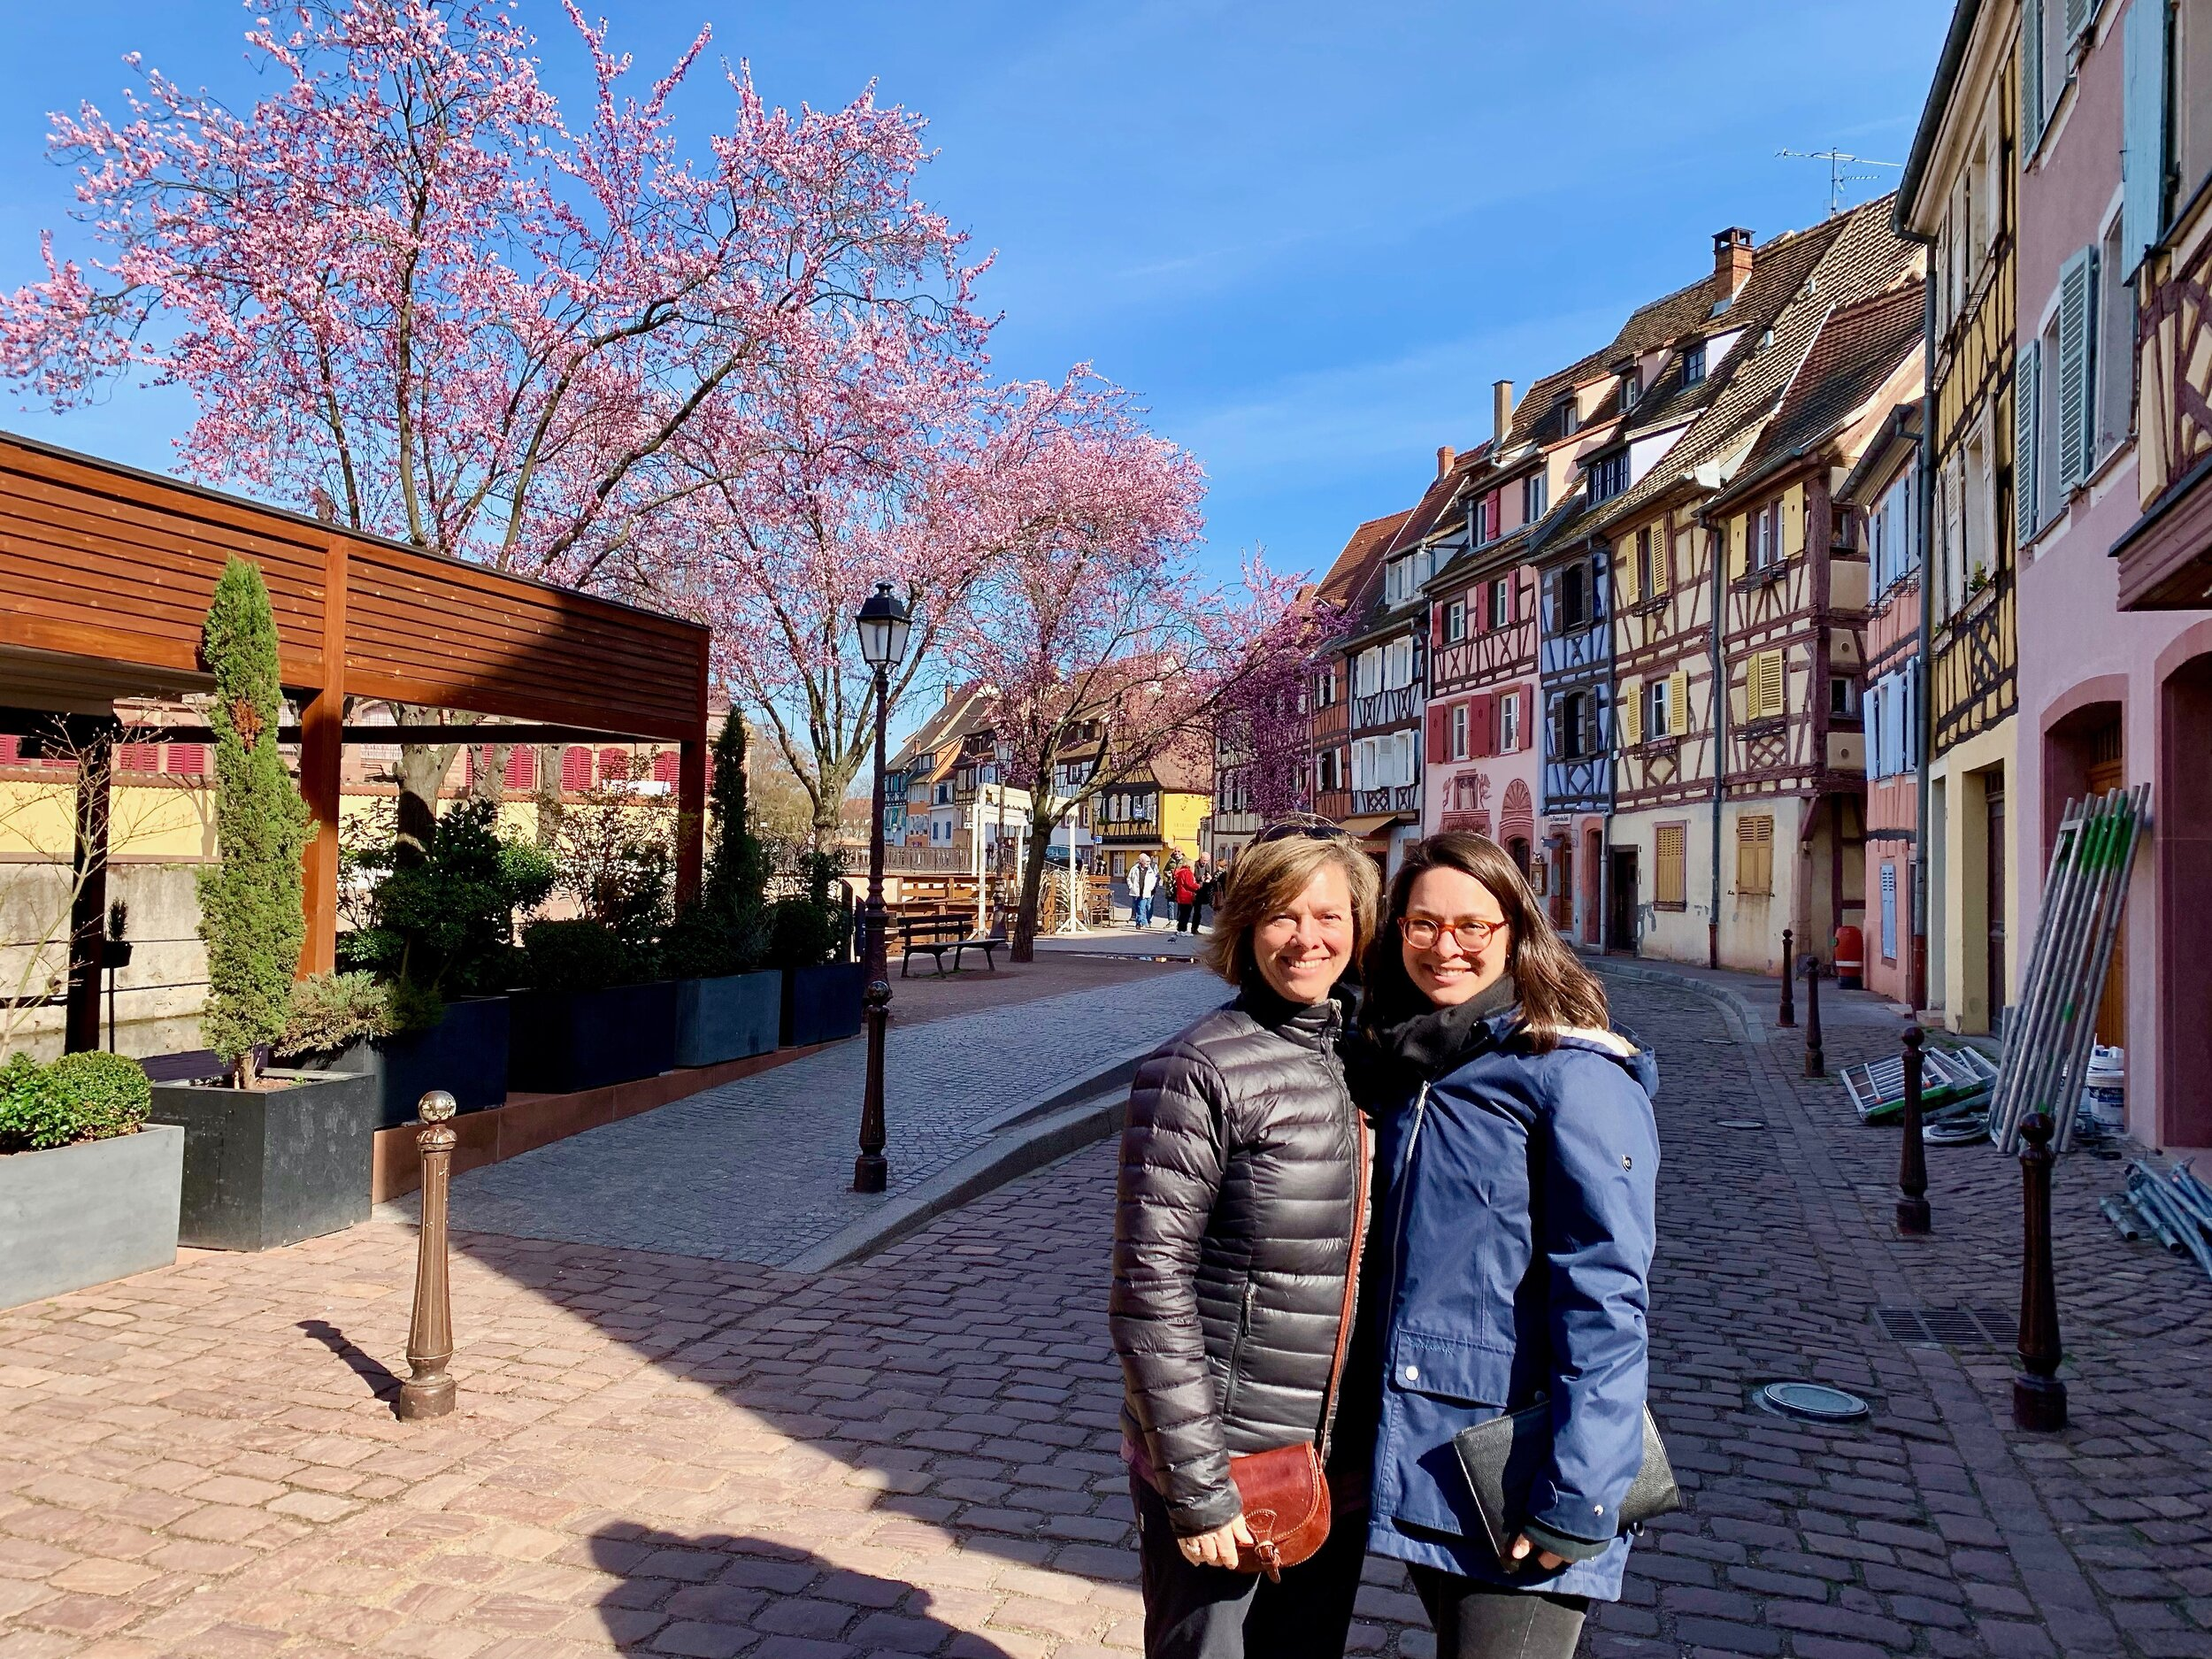 Betsy and Chelsea on the streets of Colmar in the Alsace region of France